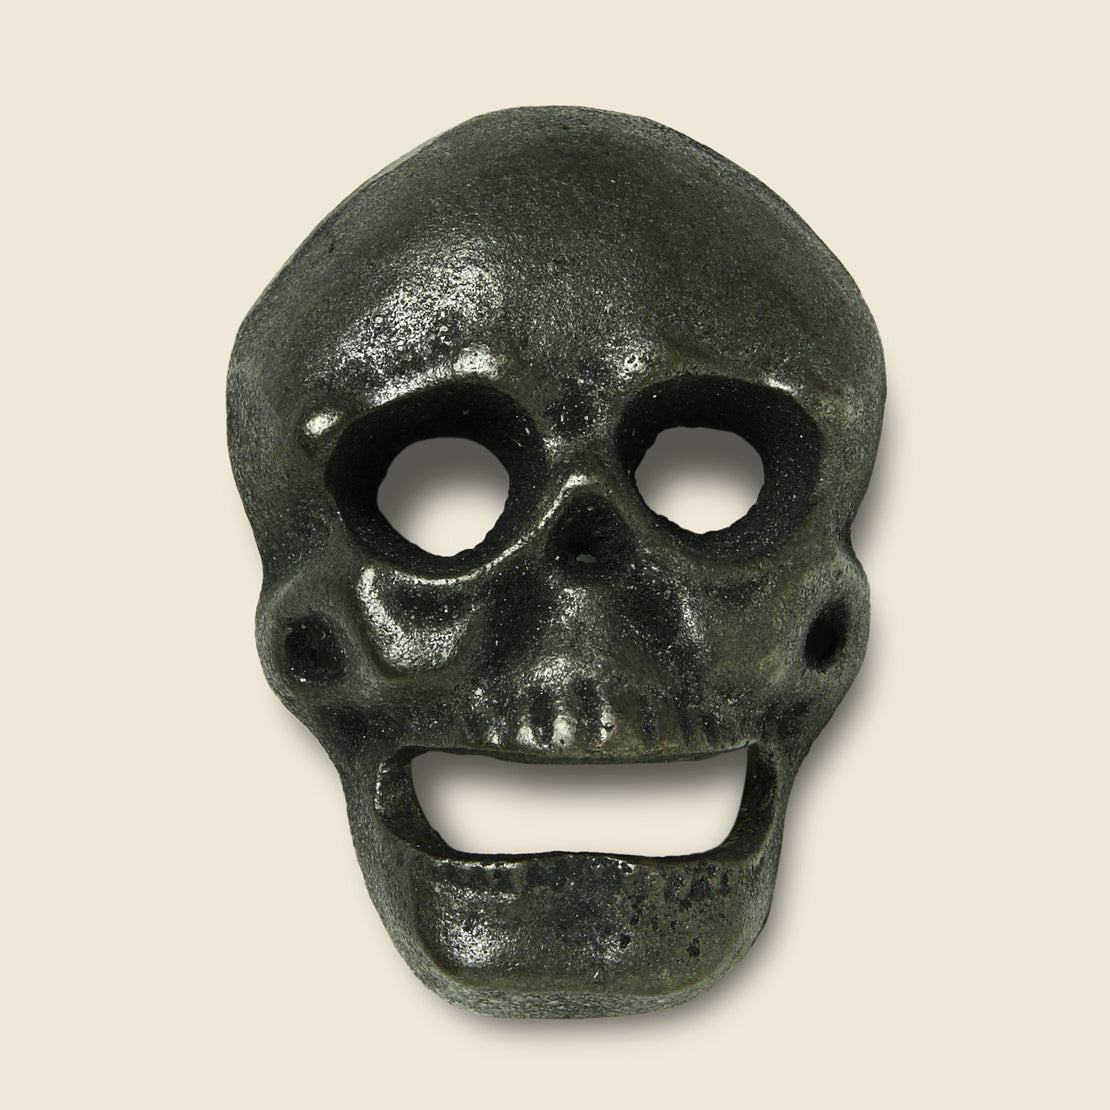 Barware Skull Bottle Opener